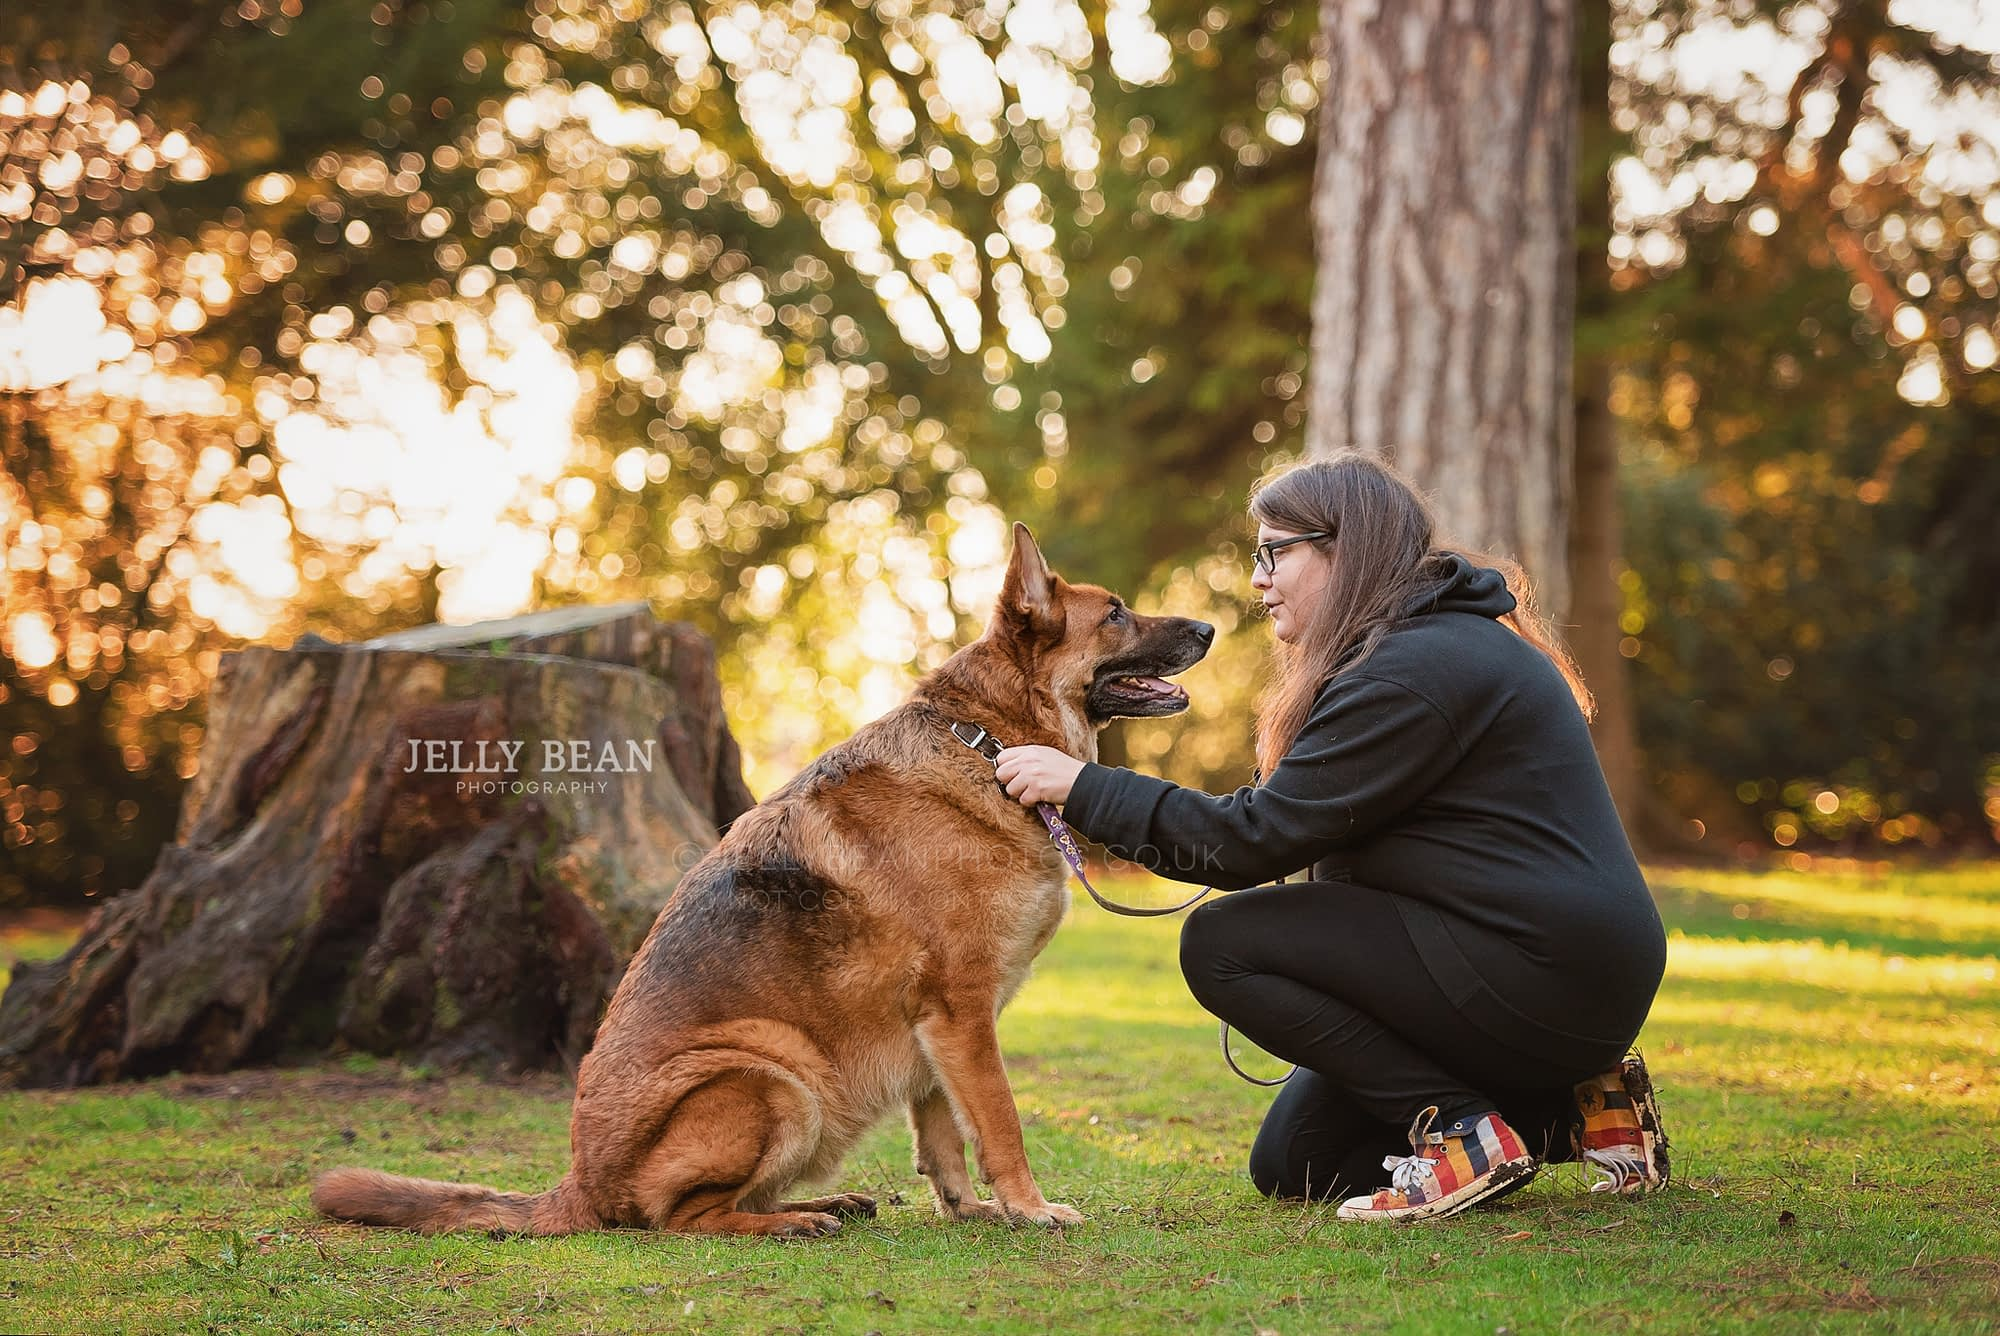 German shepherd and his owner sitting together